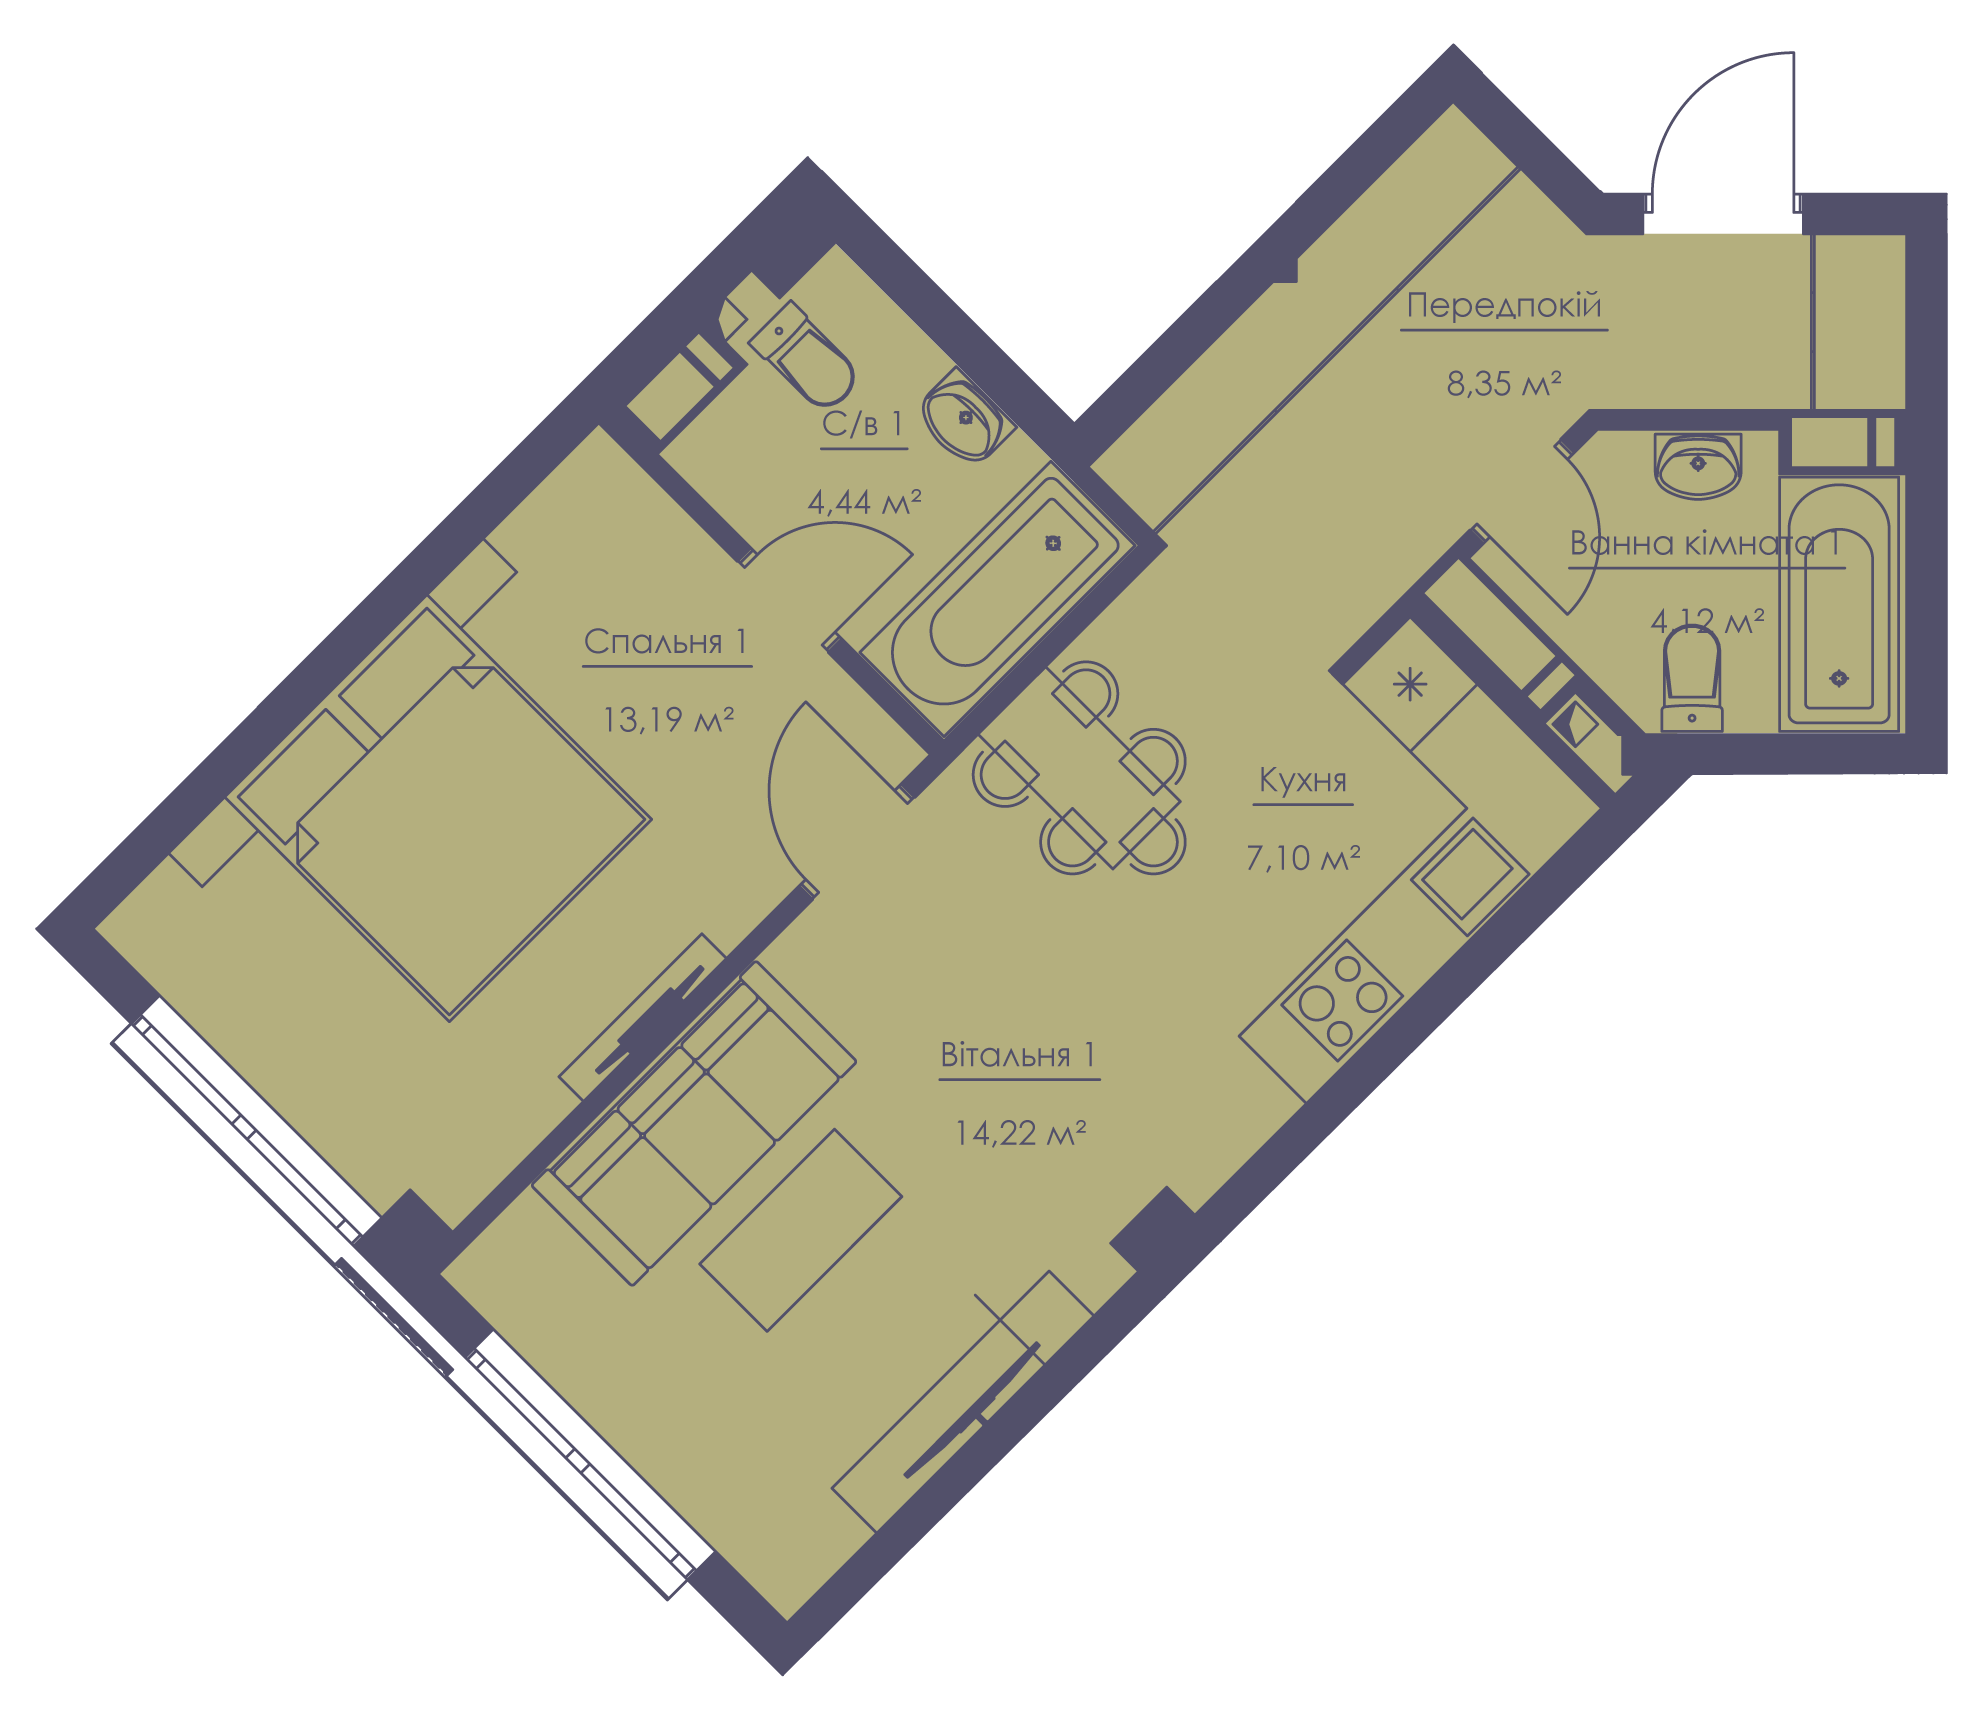 Apartment layout KV_60_2m_1_1_3-1